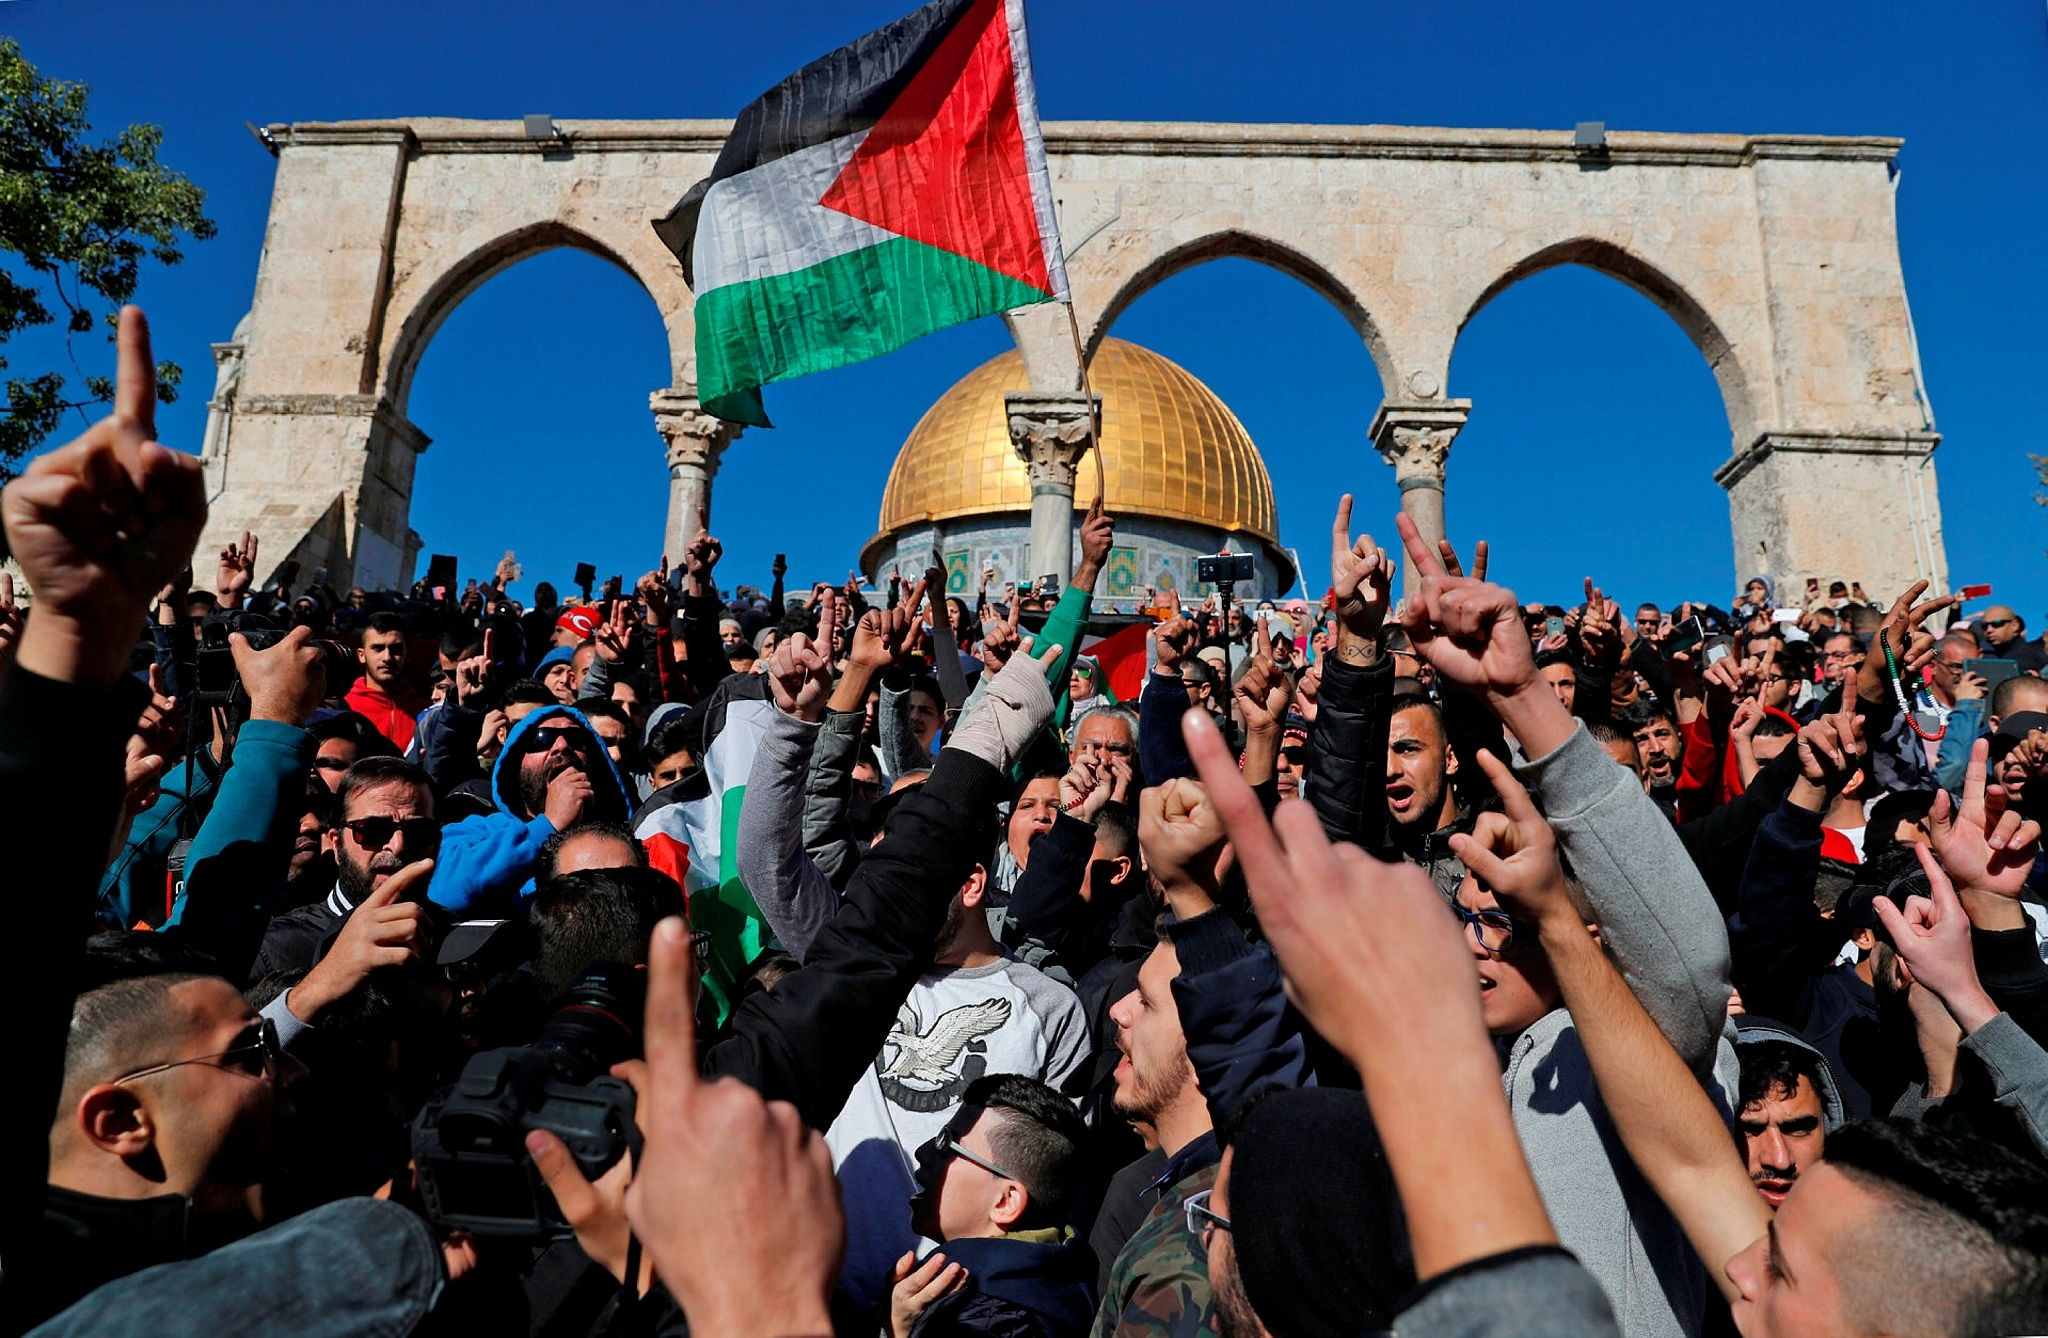 Palestinian Muslim worshippers shout slogans during Friday prayer in front of the Dome of the Rock mosque at the al-Aqsa mosque compound in the Jerusalem's Old City on December 8, 2017. (AFP Photo)